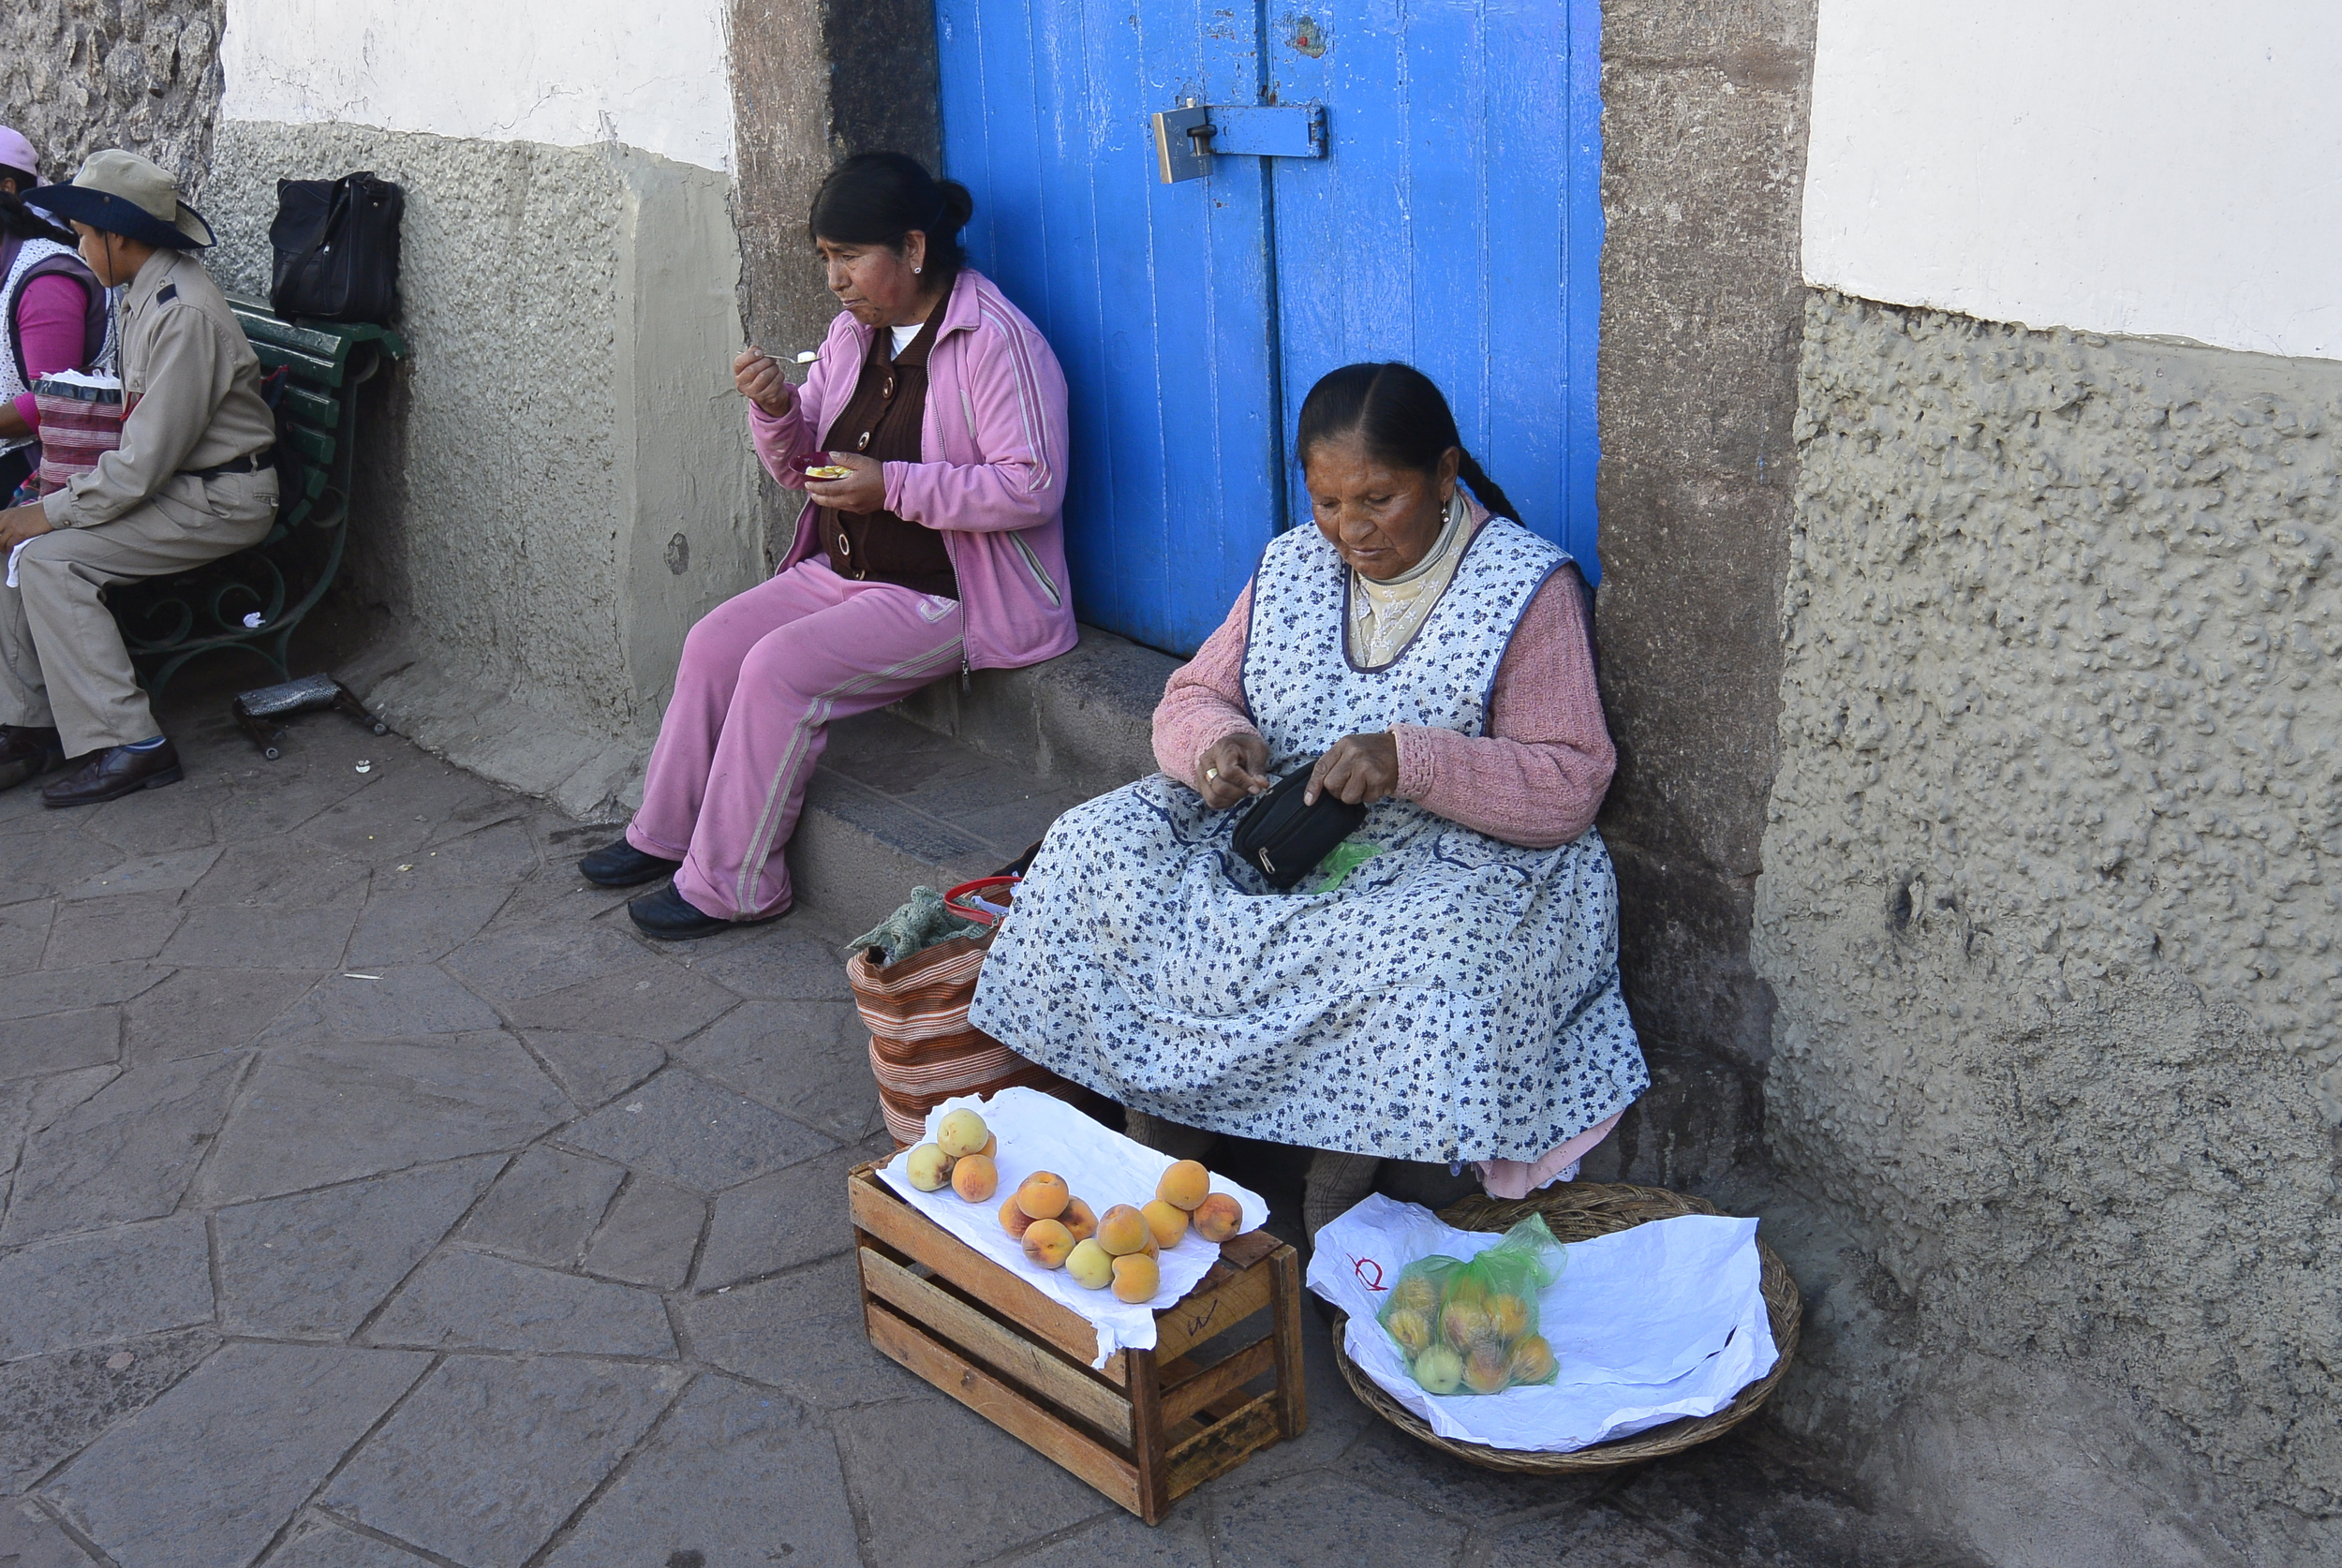 Peruvian Women selling fruit in Cusco Peru